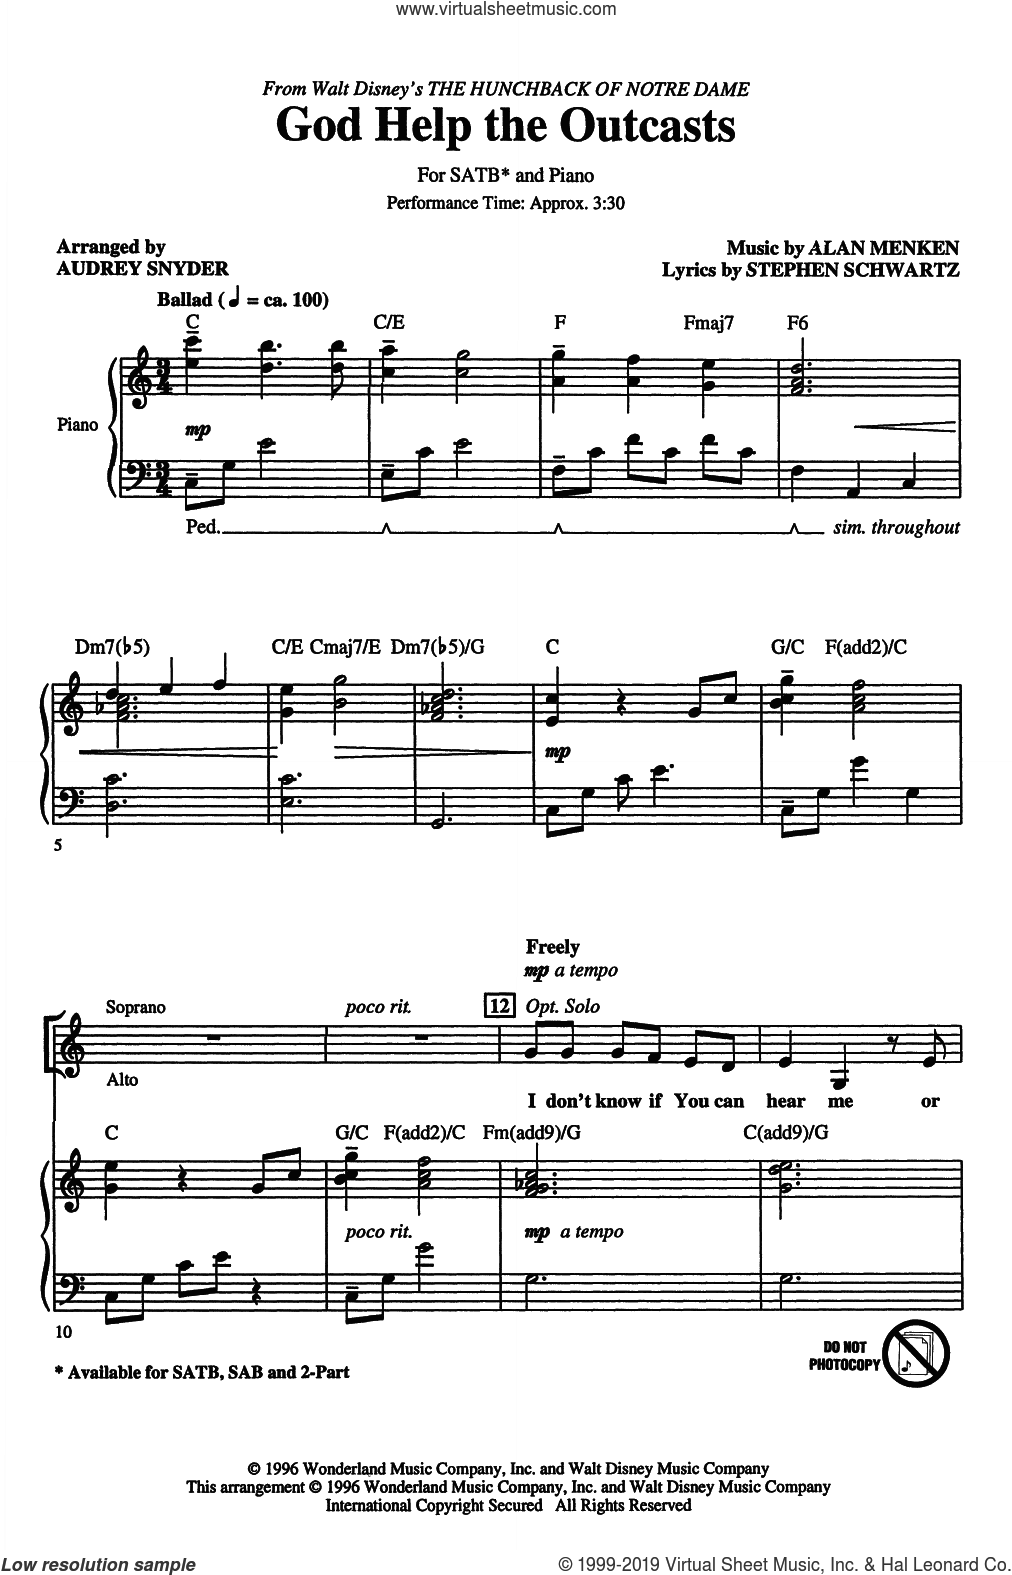 God Help The Outcasts (from The Hunchback Of Notre Dame) (arr. Audrey Snyder) sheet music for choir (SATB: soprano, alto, tenor, bass) by Bette Midler, Audrey Snyder, Alan Menken and Stephen Schwartz, intermediate skill level